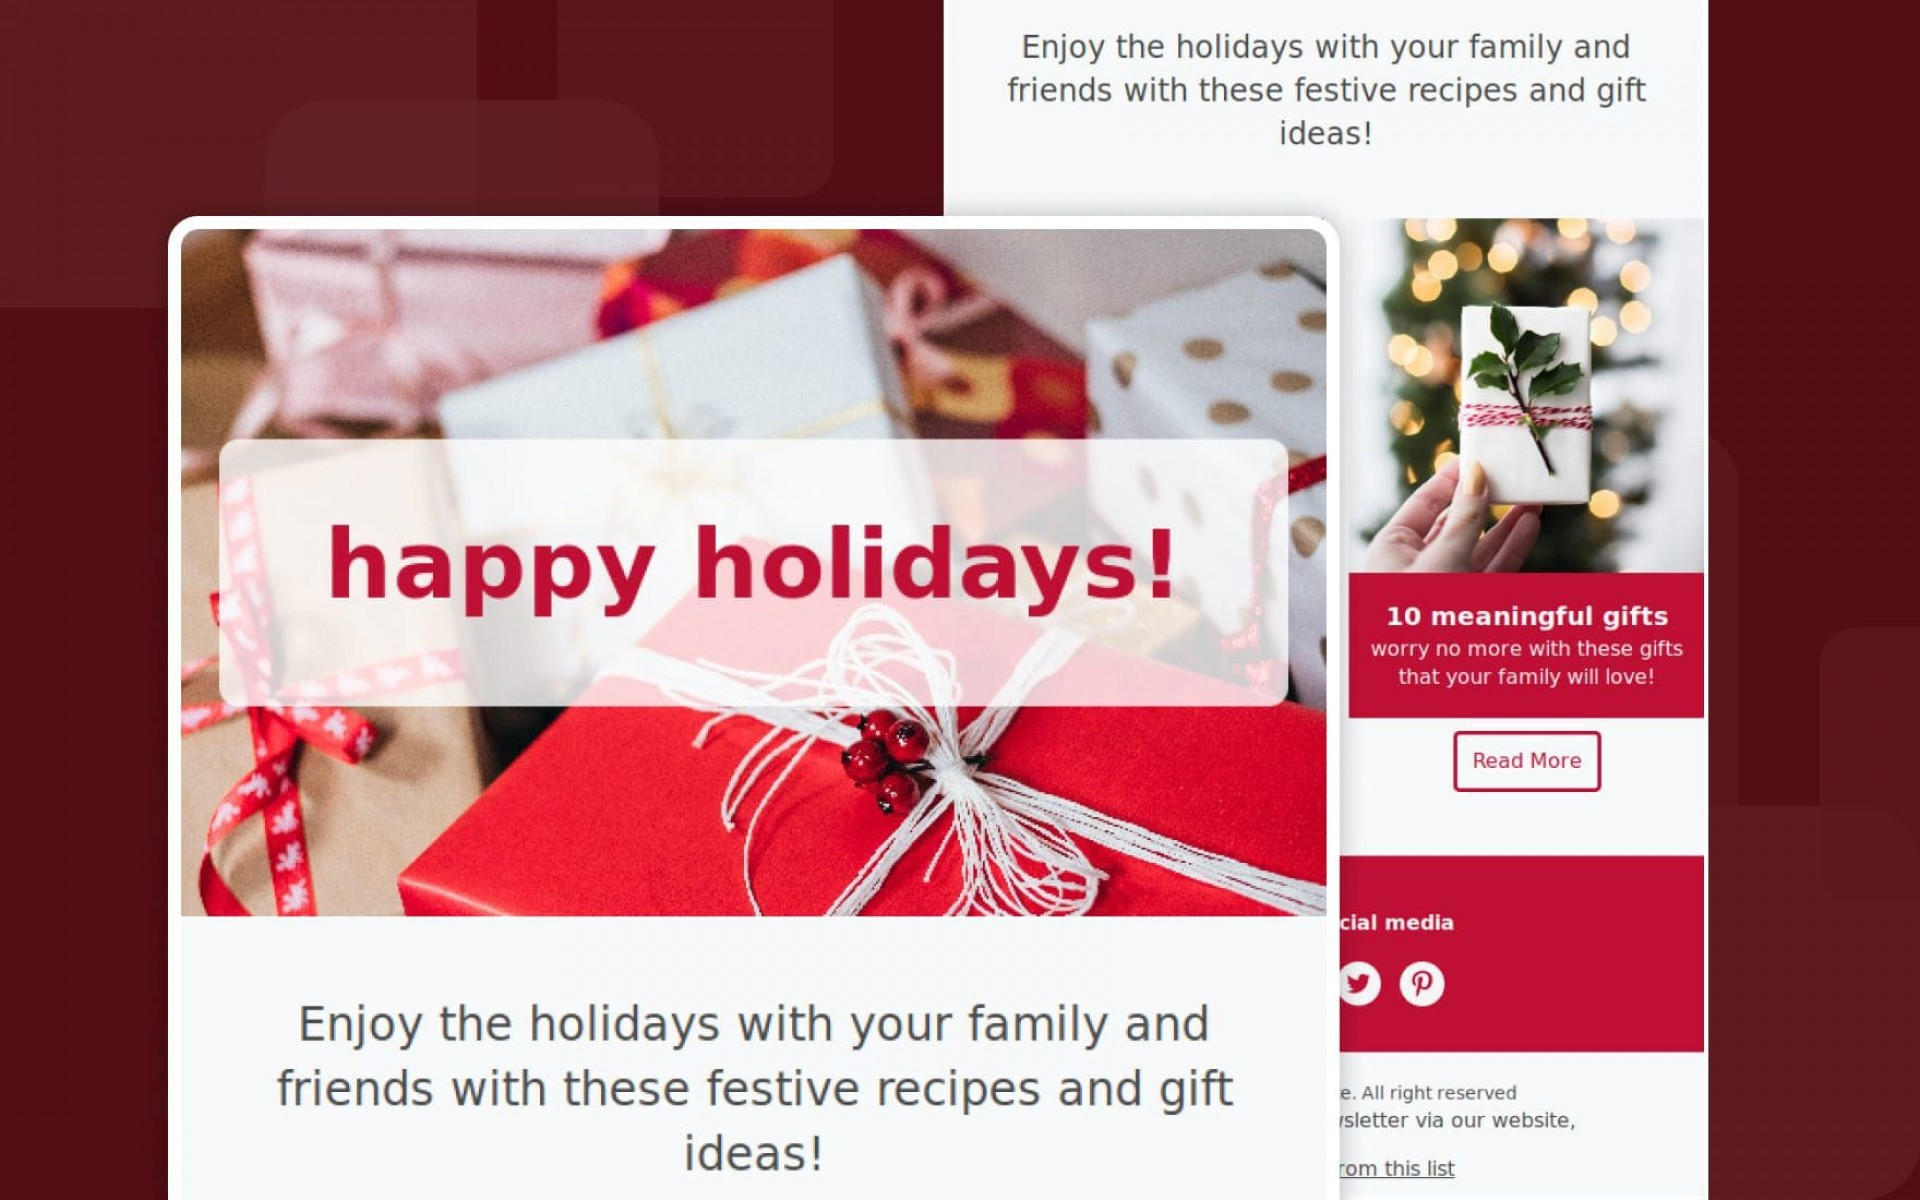 004 Surprising Holiday E Mail Template Image  Email Outlook Christma For Message1920